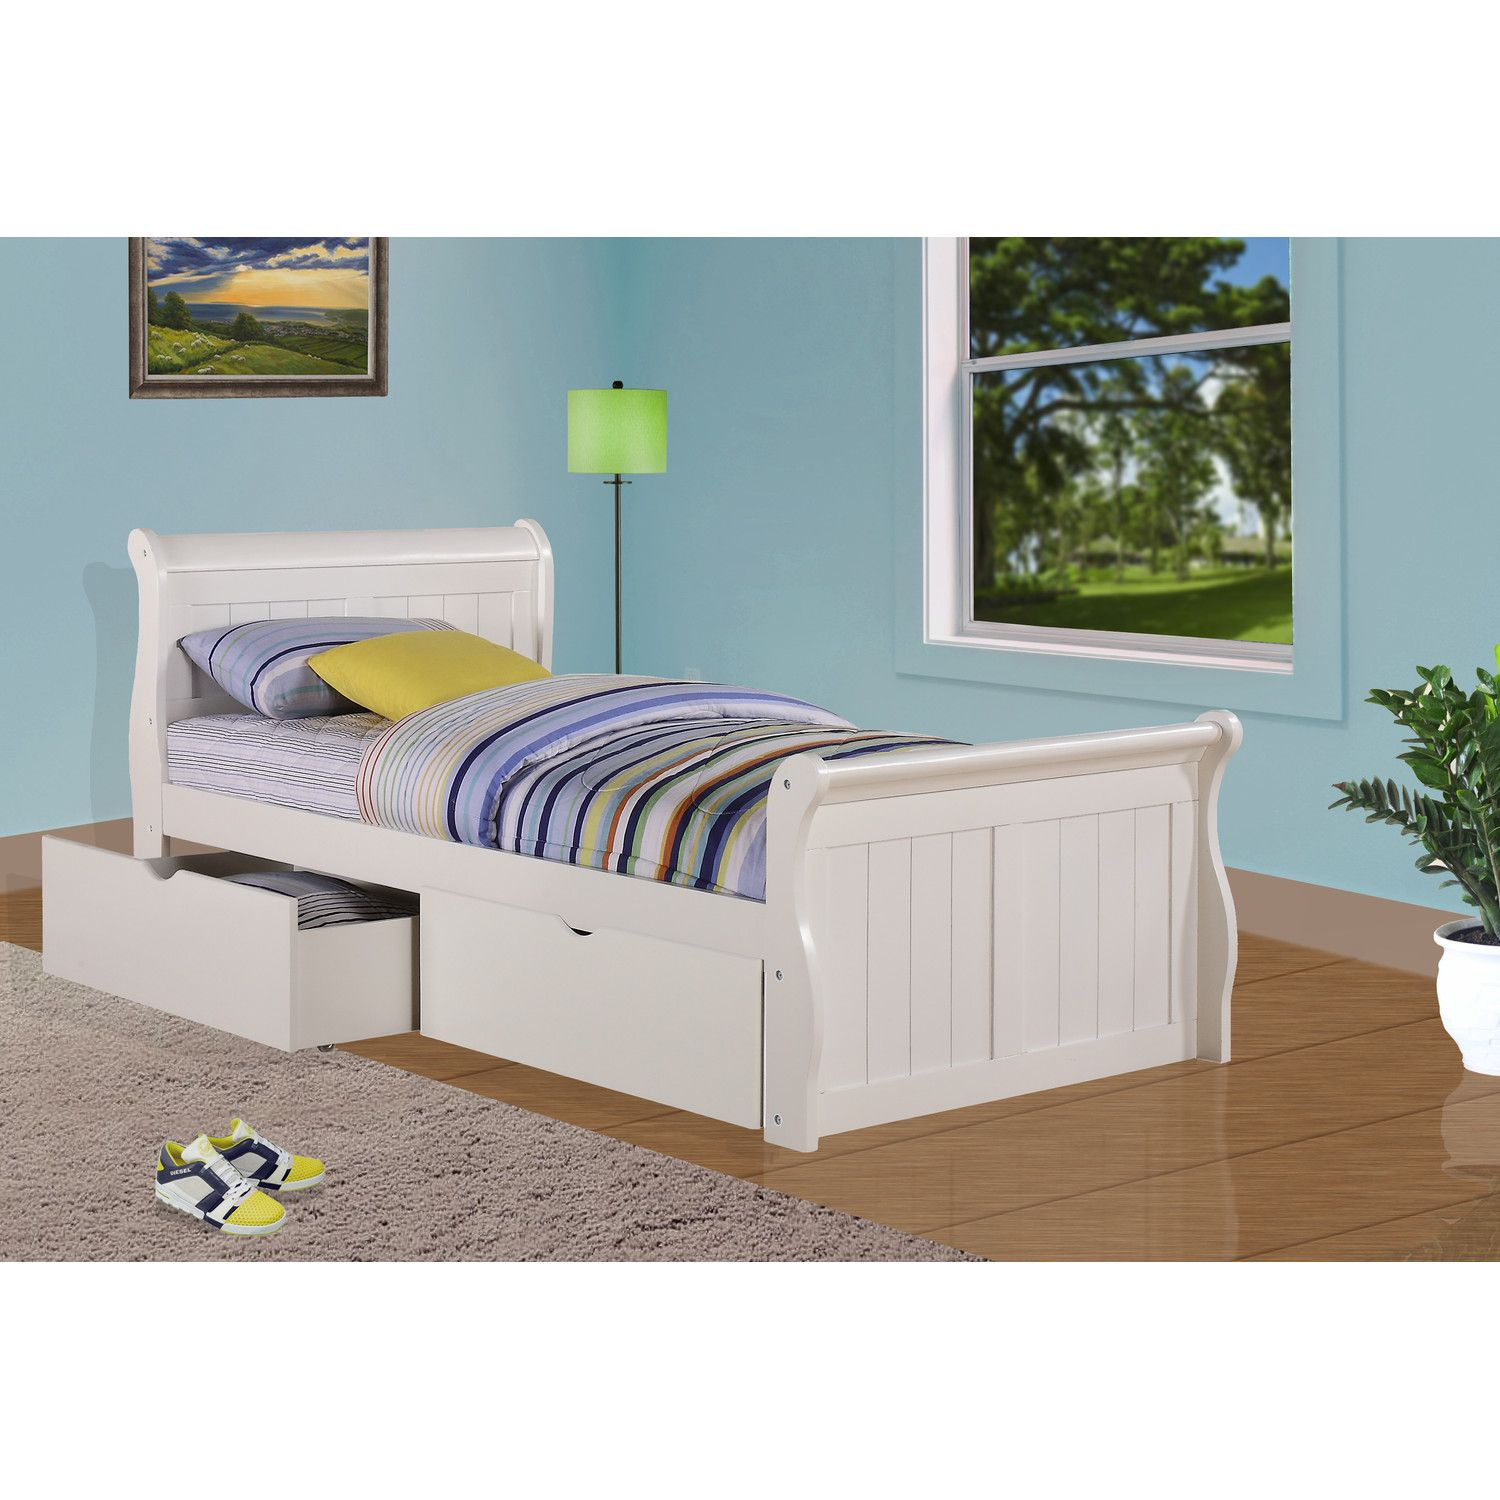 Donco Kids Sleigh Bed with Dual Underbed Drawers White